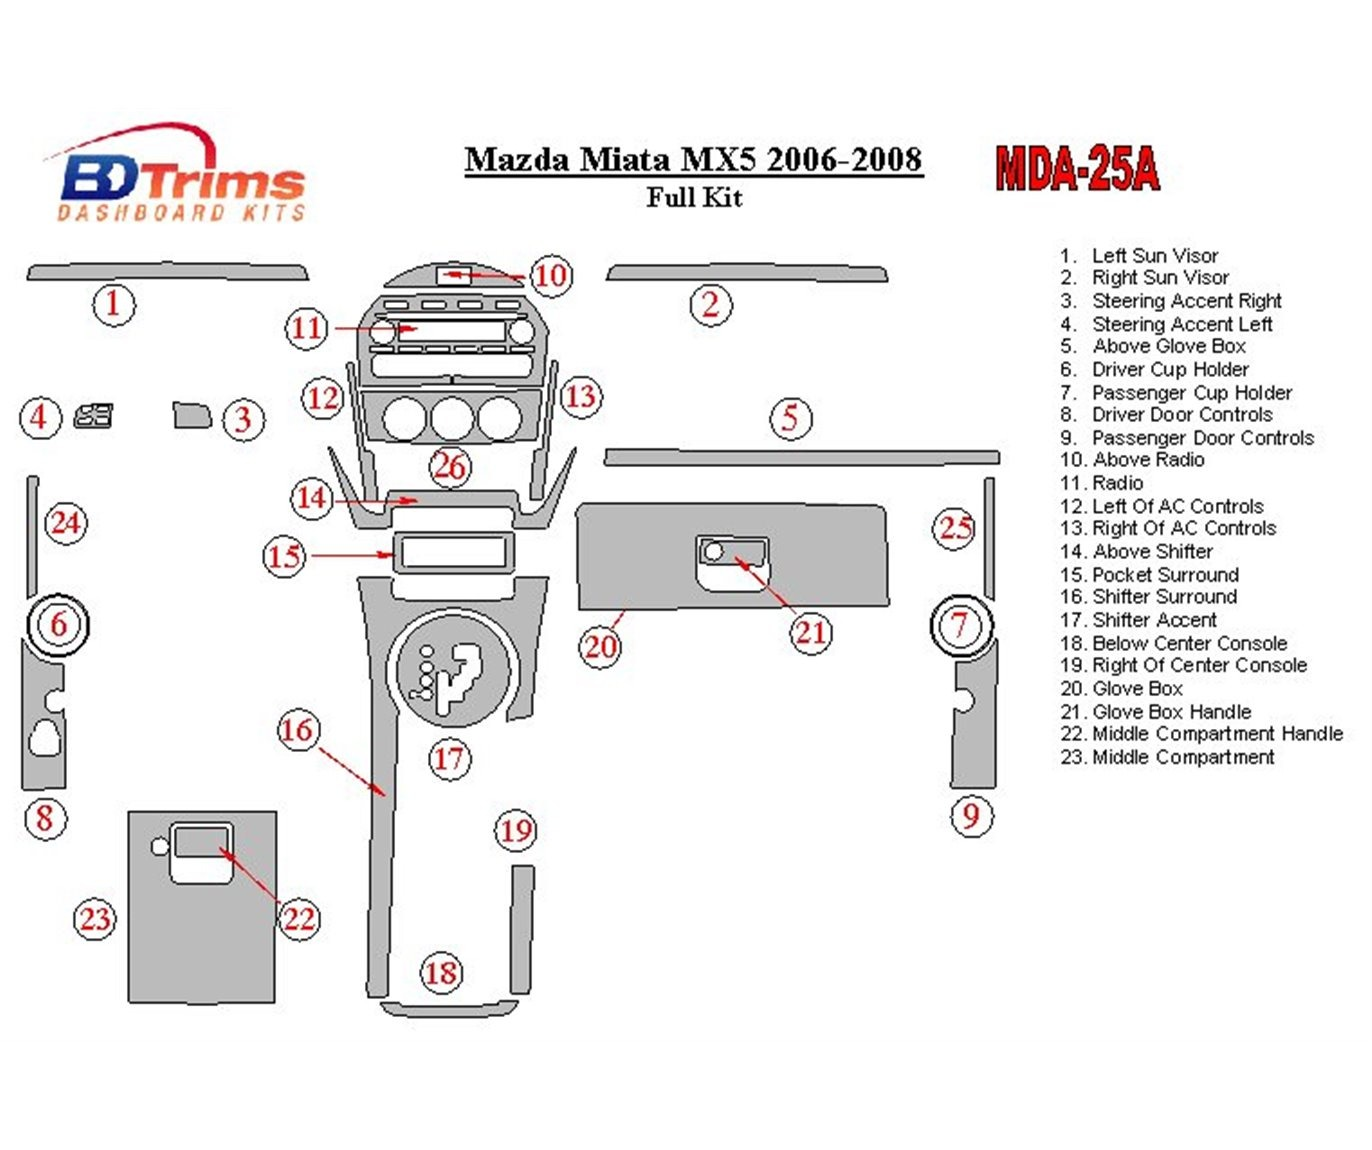 Mazda Miata 2006-2008 Full Set Interior BD Dash Trim Kit